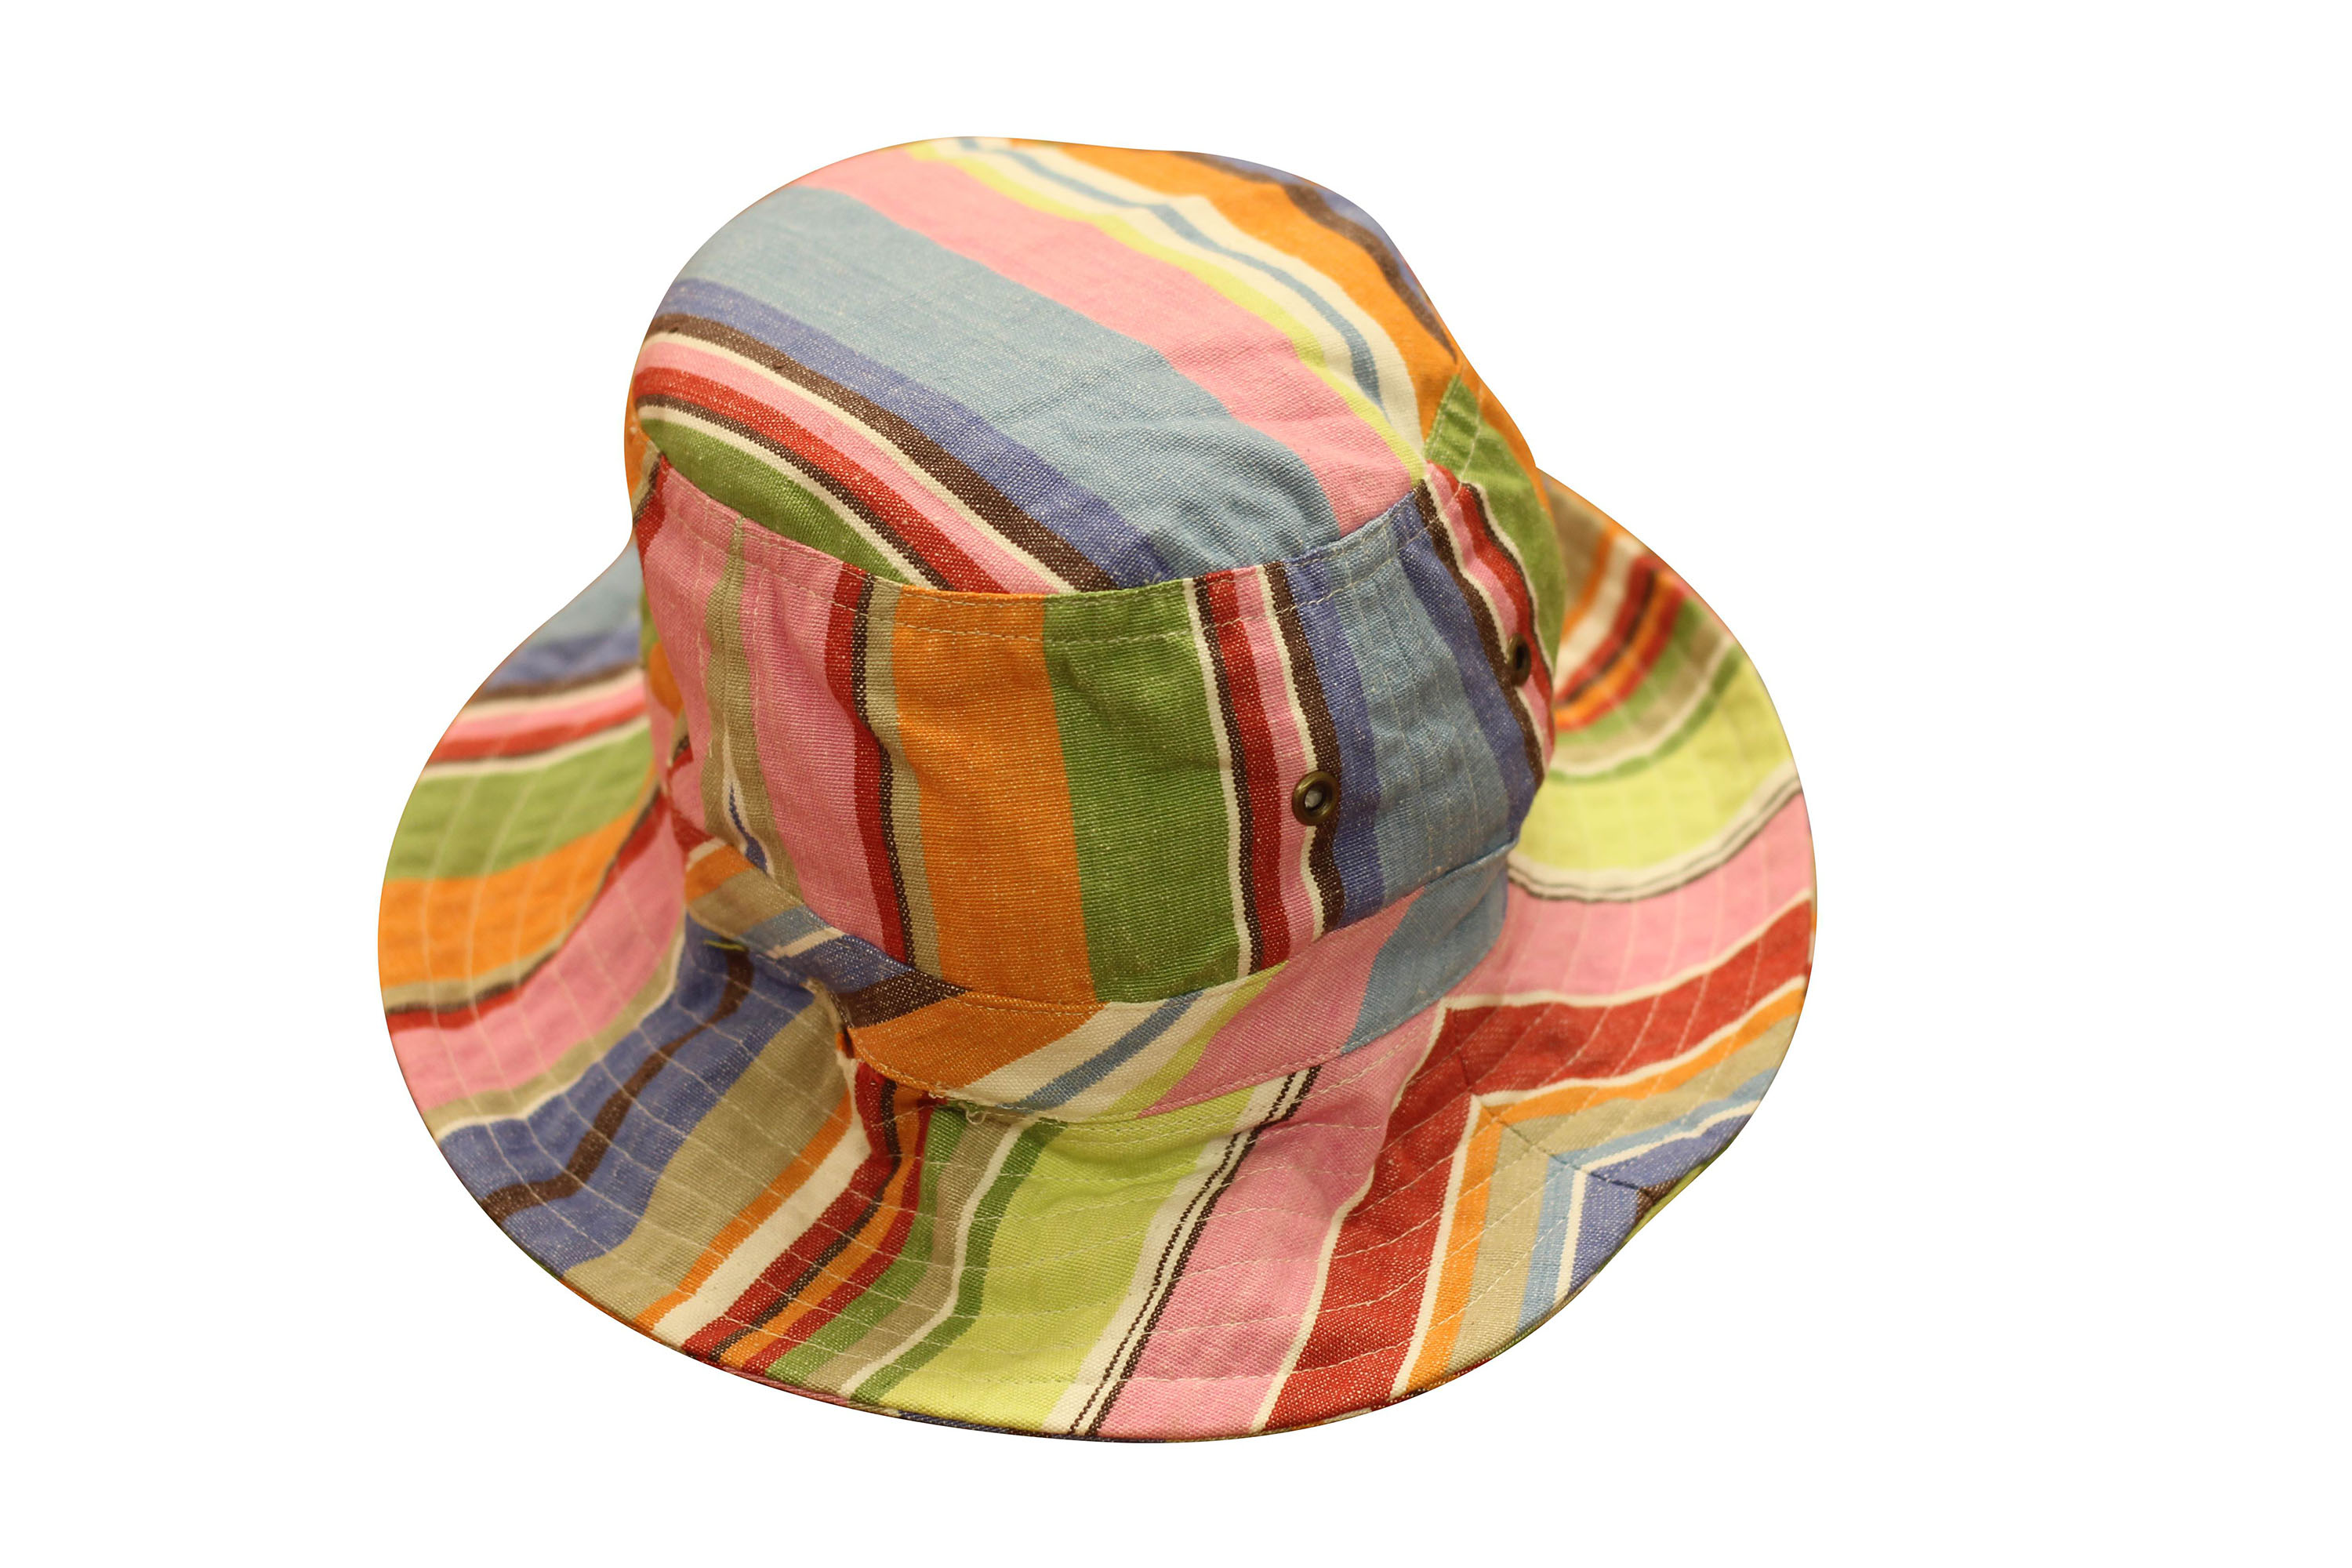 Light Blue and Pink Striped Bucket Hat | Sun Protection Hat  Baseball Stripes